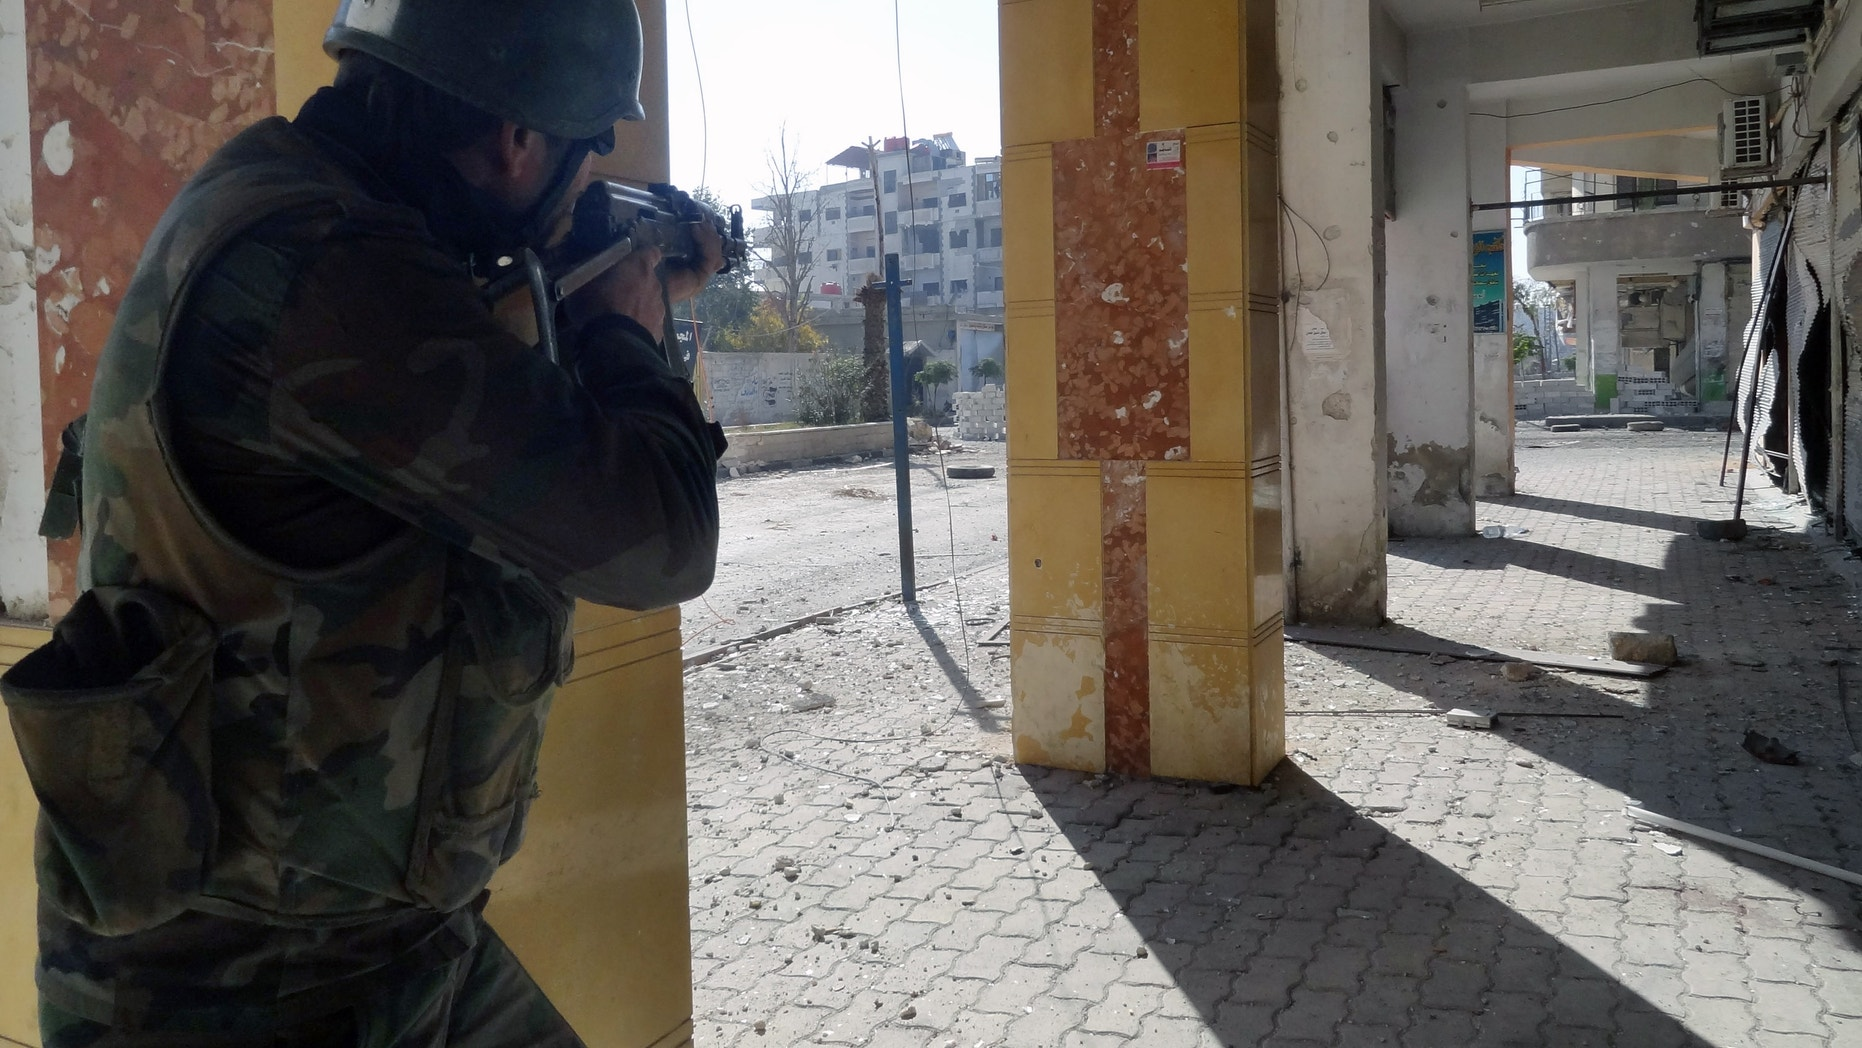 Dec. 2, 2012 Syrian soldier aims his rifle at free Syrian Army fighters during clashes in the Damascus suburb of Daraya, Syria.